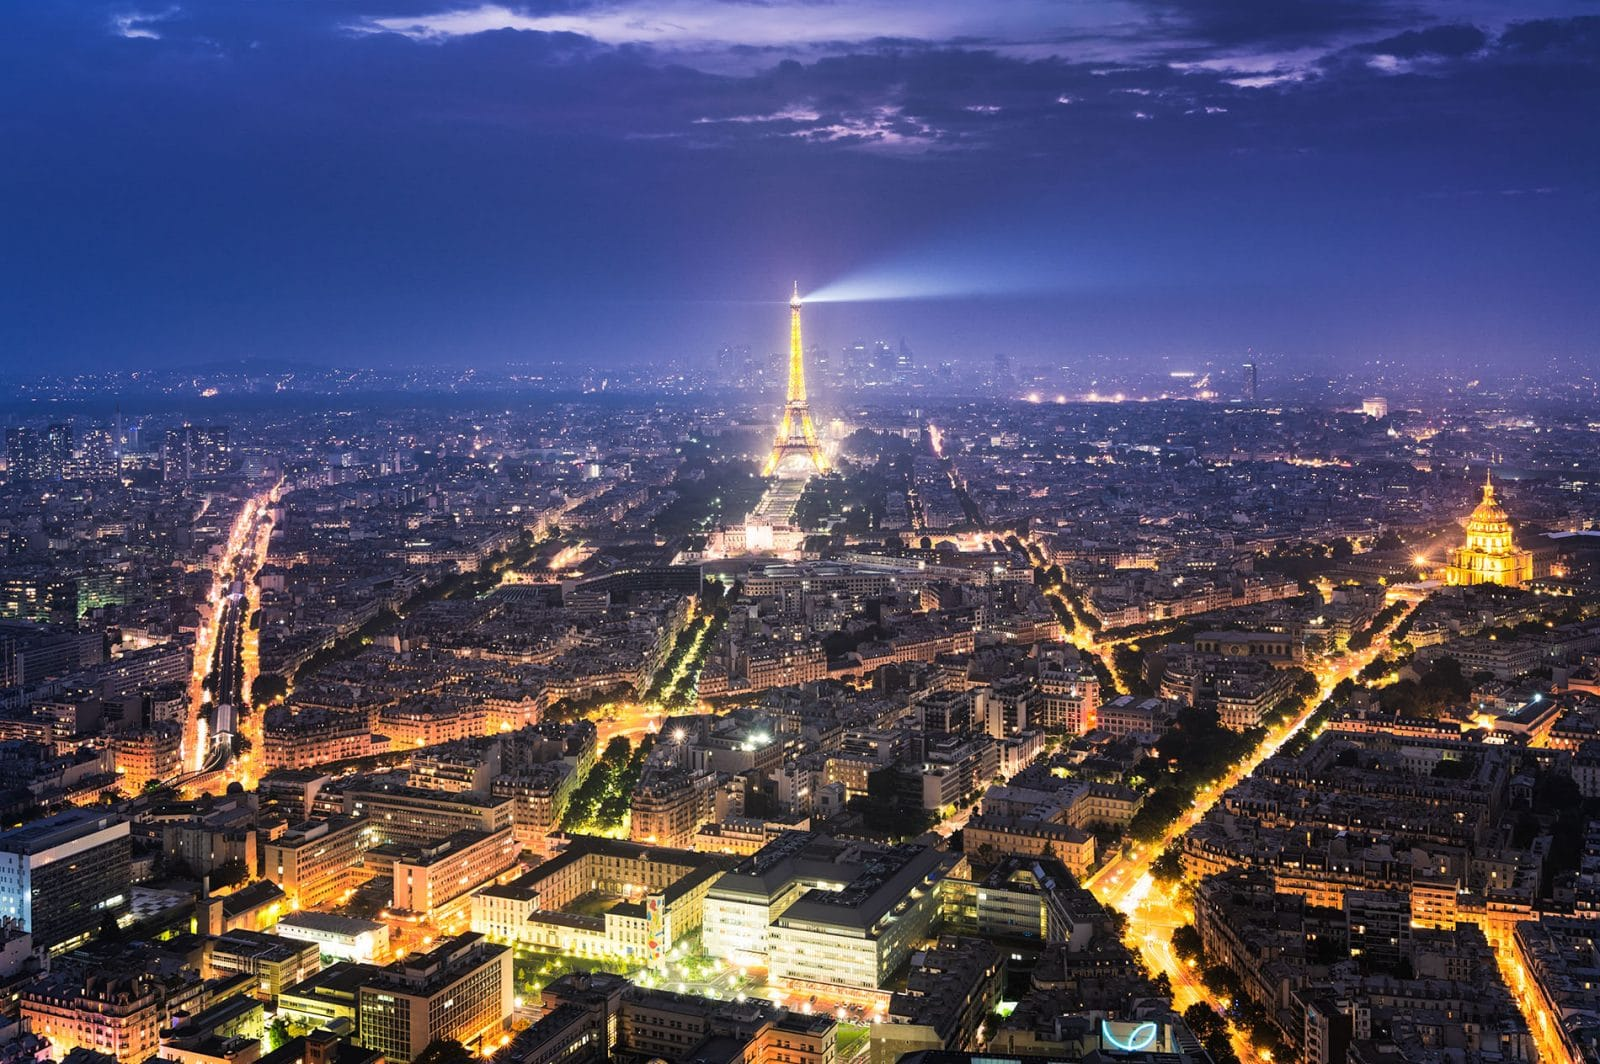 best view of Paris from the MONTPARNASSE TOWER in Paris taken by Ben Harrison photography